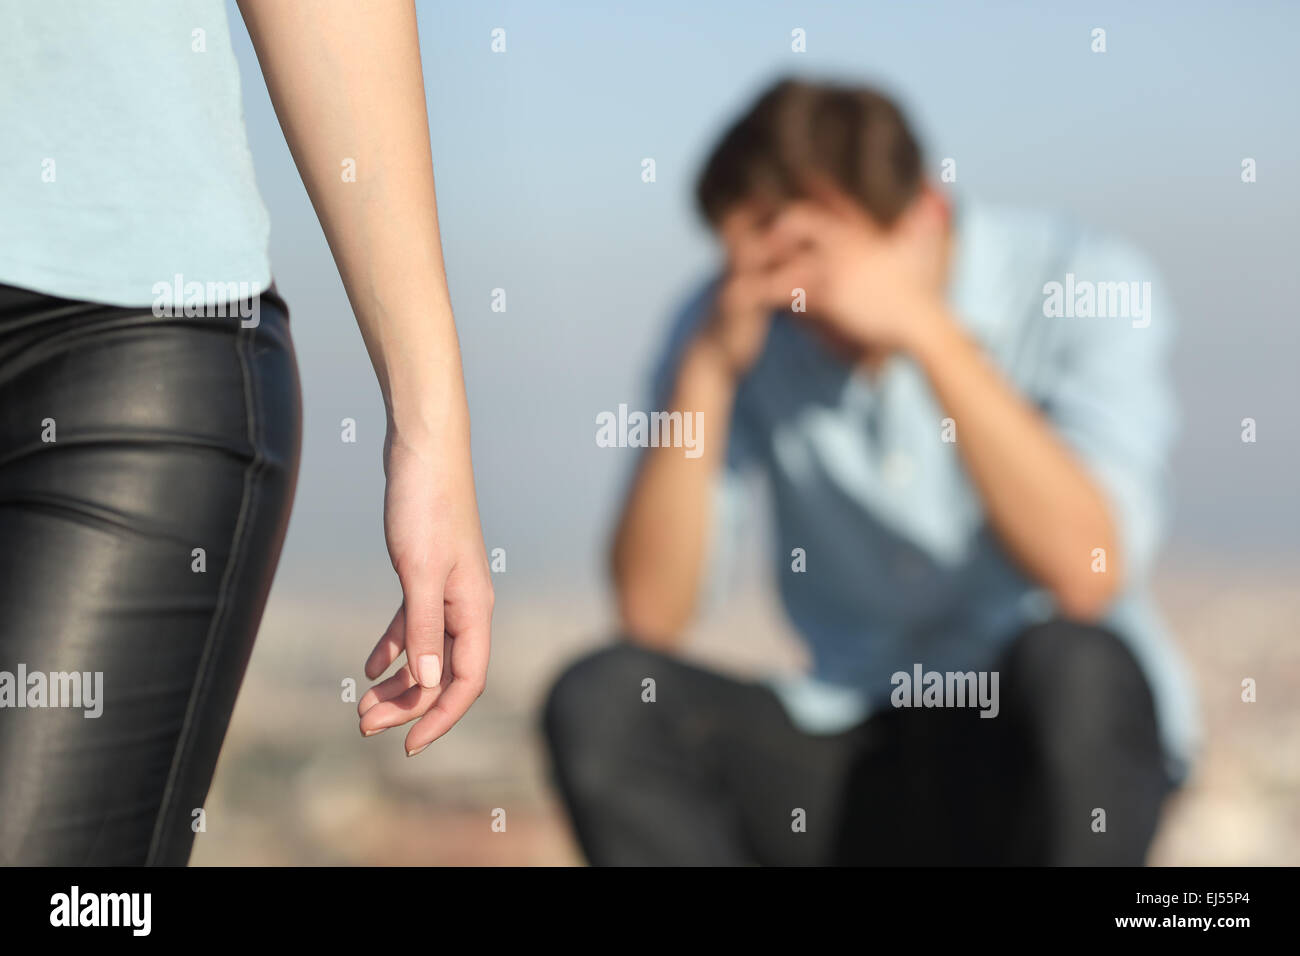 Breakup of a couple with a sad man in the background and the girlfriend leaving him in the foreground - Stock Image